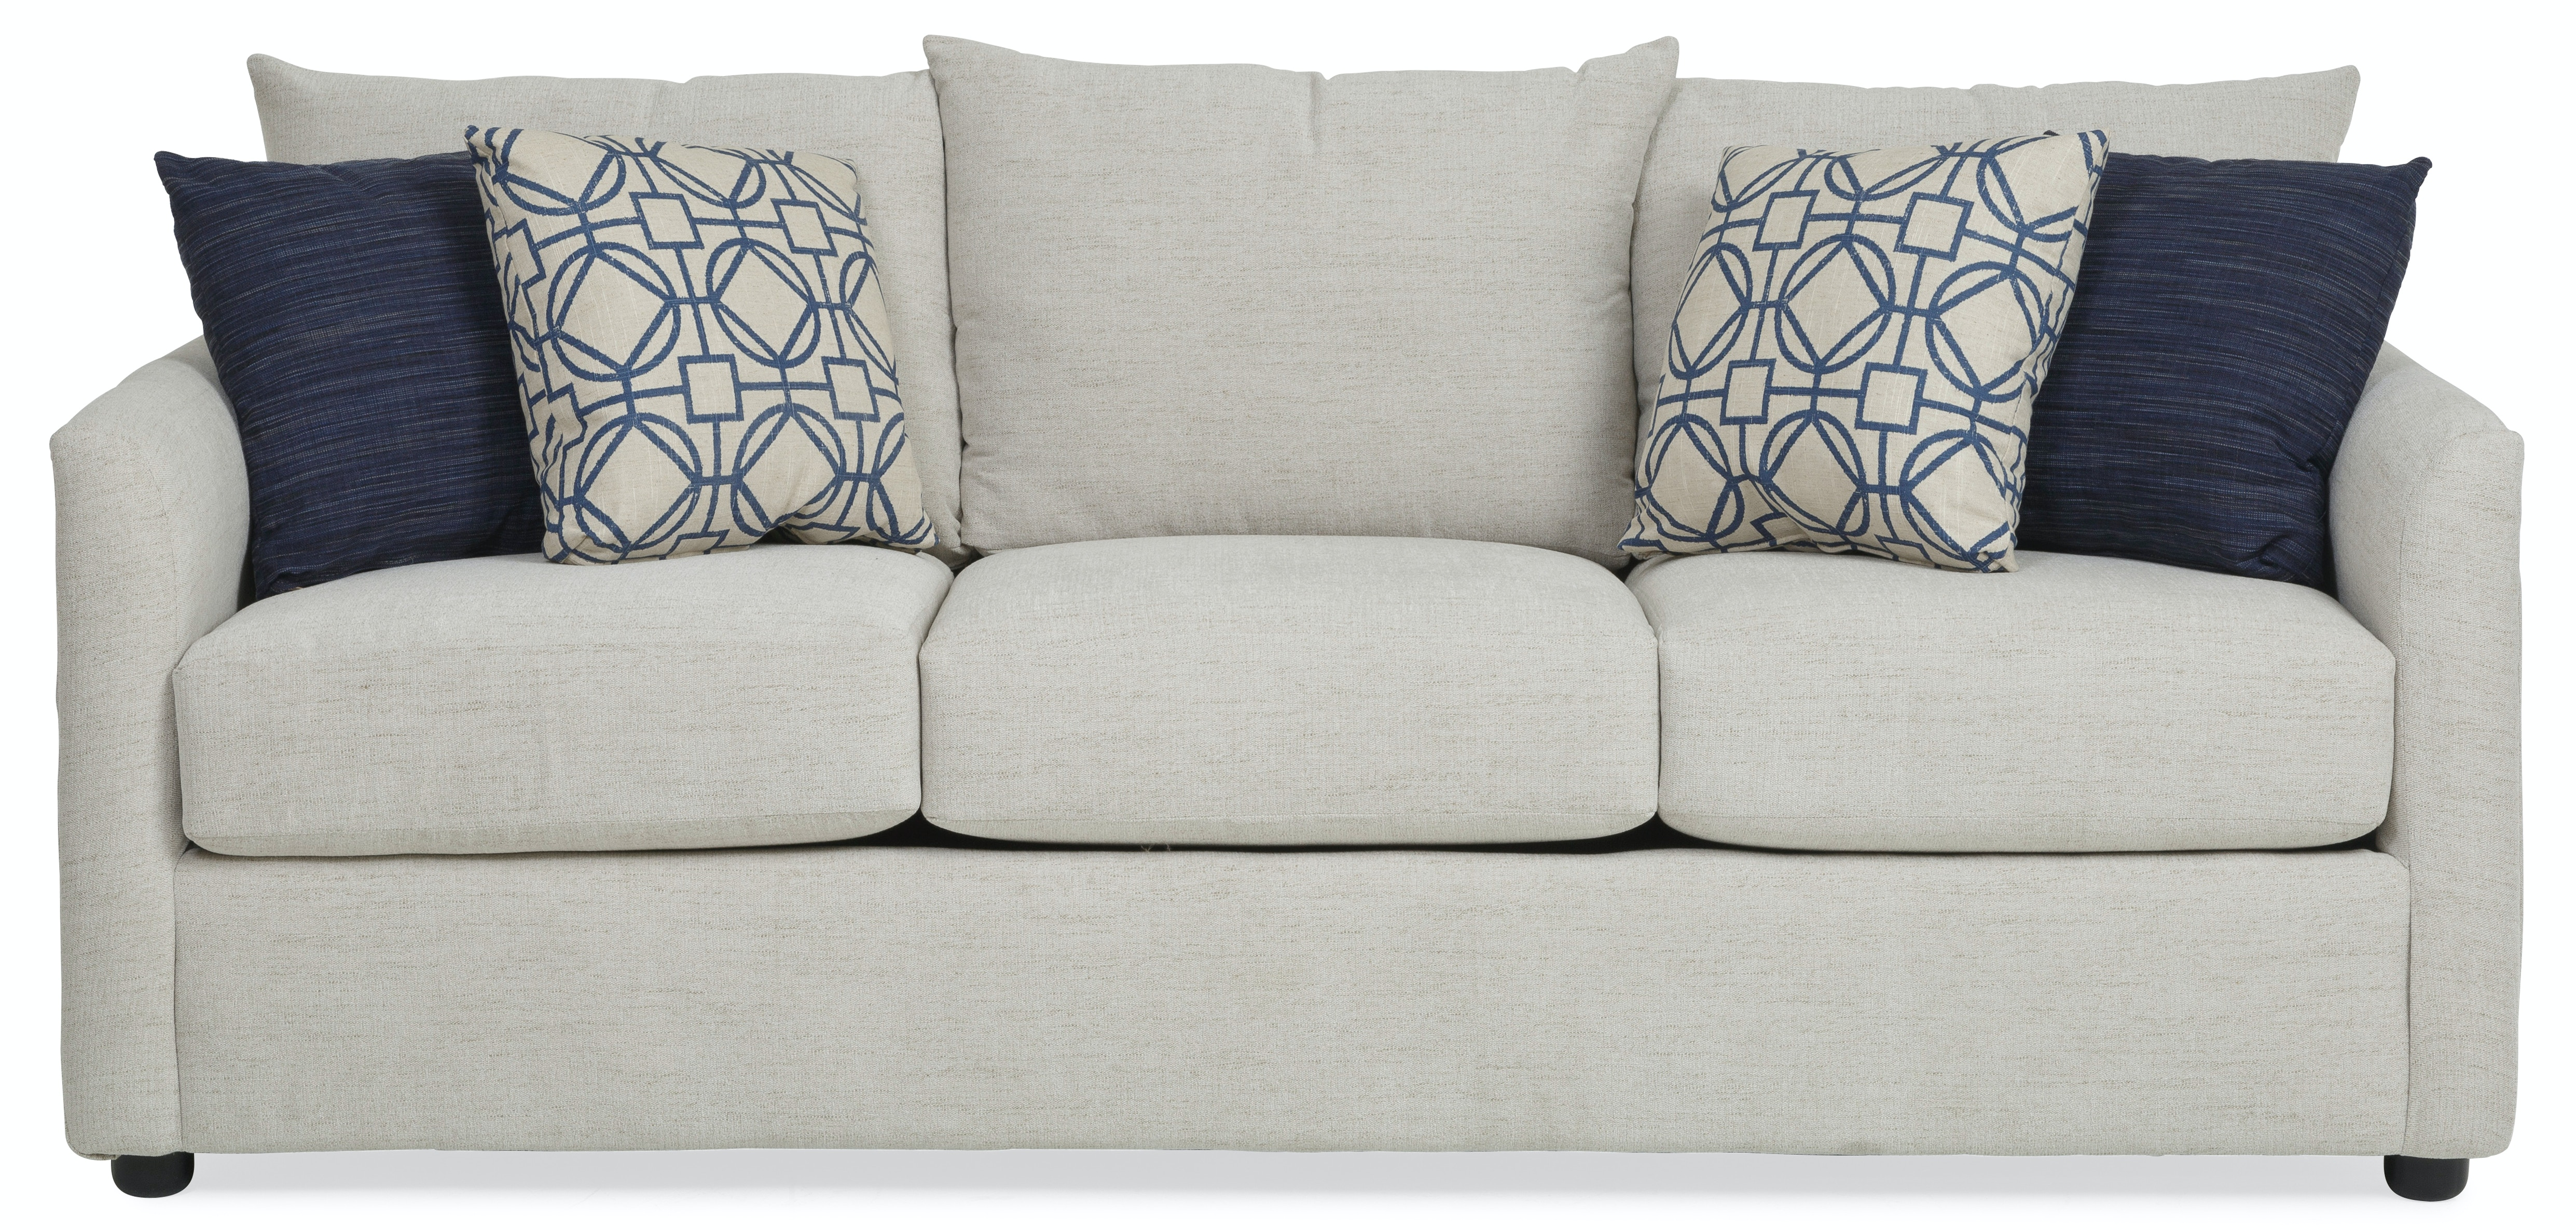 Trisha Yearwood   Atlanta Sleeper Sofa   QUEEN ST:469203